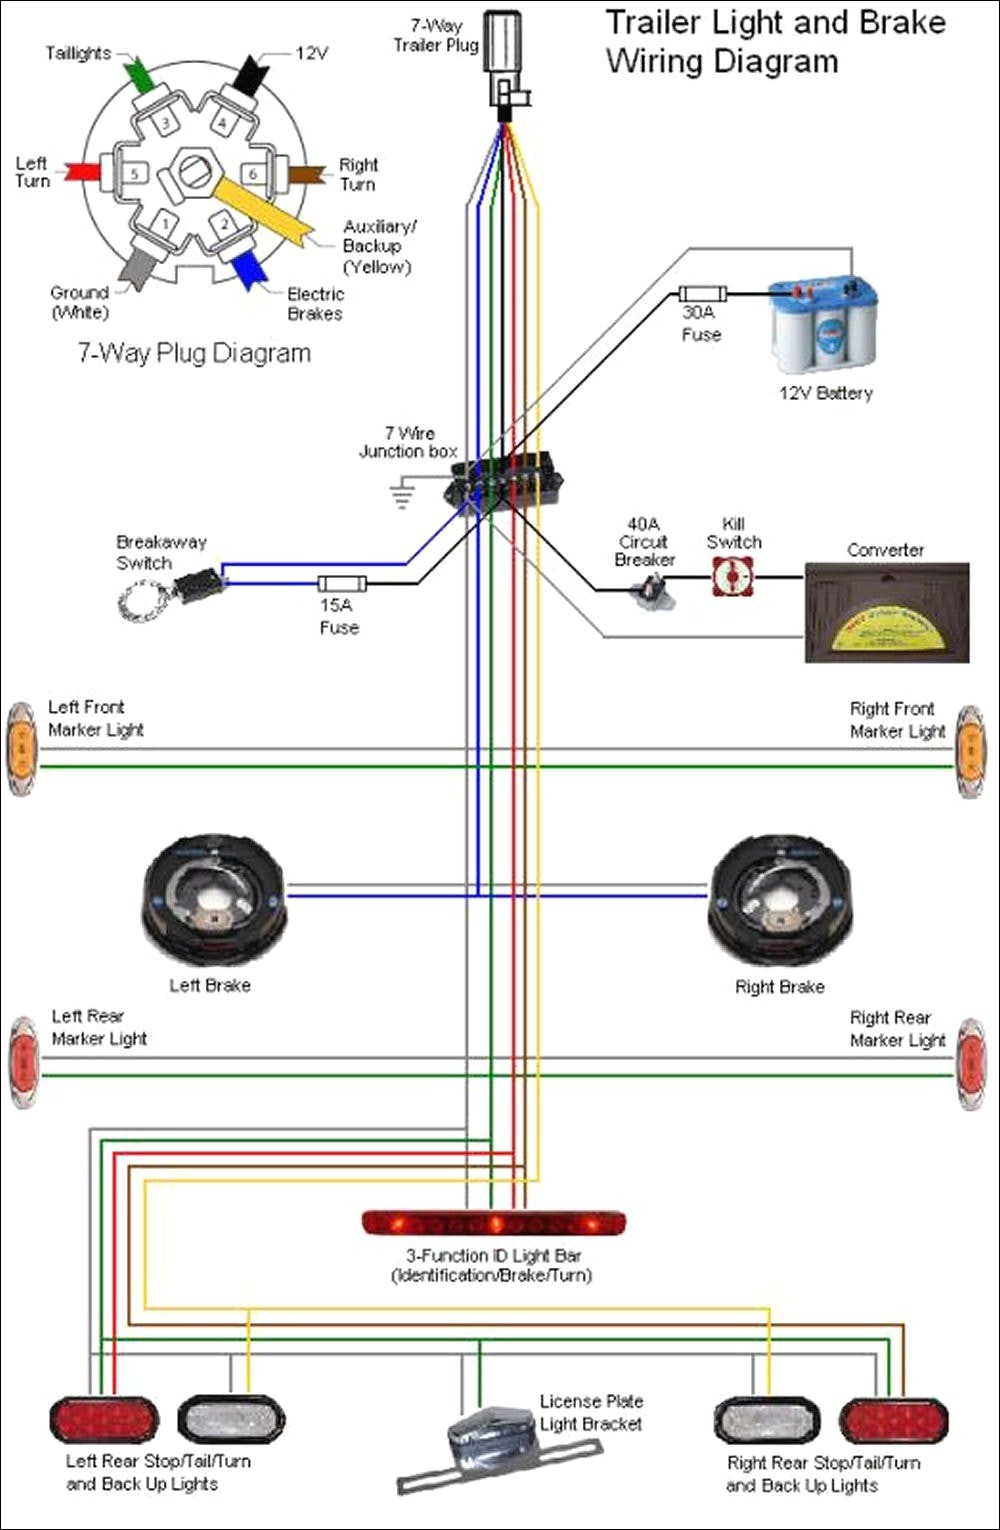 7 Wire Harness | Wiring Diagram - 7 Way Wiring Diagram Trailer Brakes